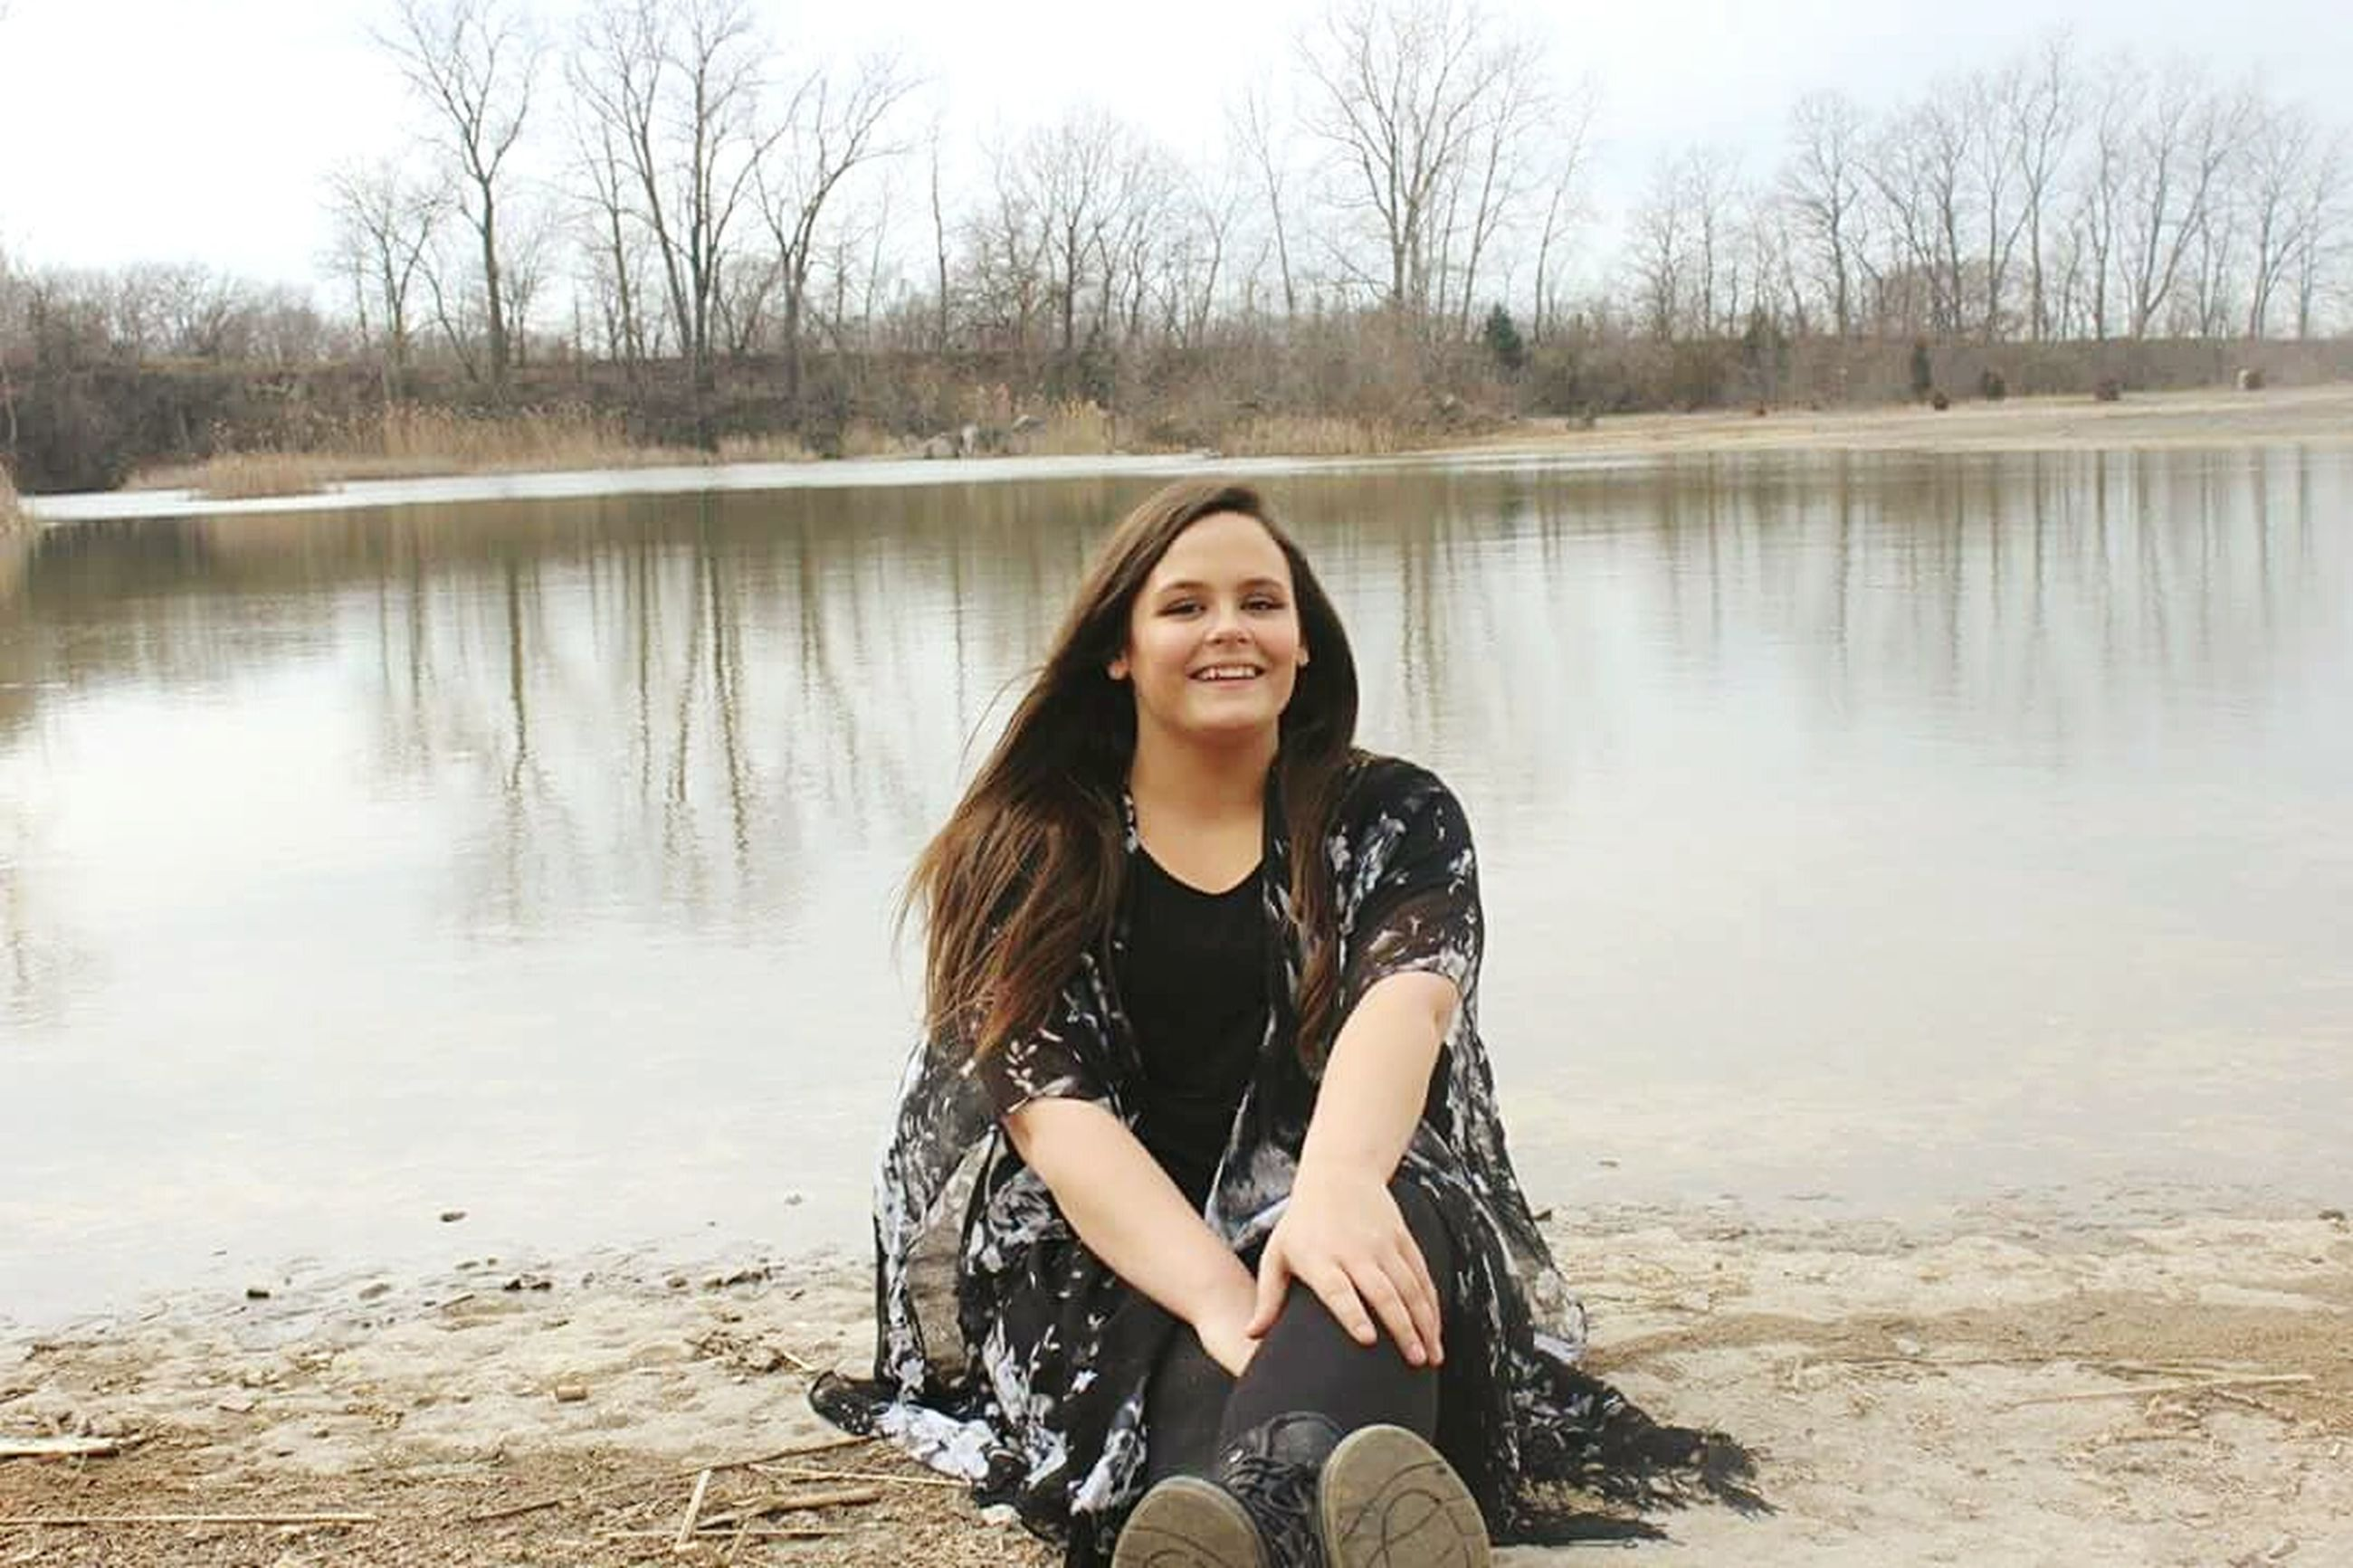 young adult, lifestyles, water, looking at camera, portrait, person, tree, leisure activity, lake, young women, front view, casual clothing, smiling, sitting, standing, sunglasses, reflection, river